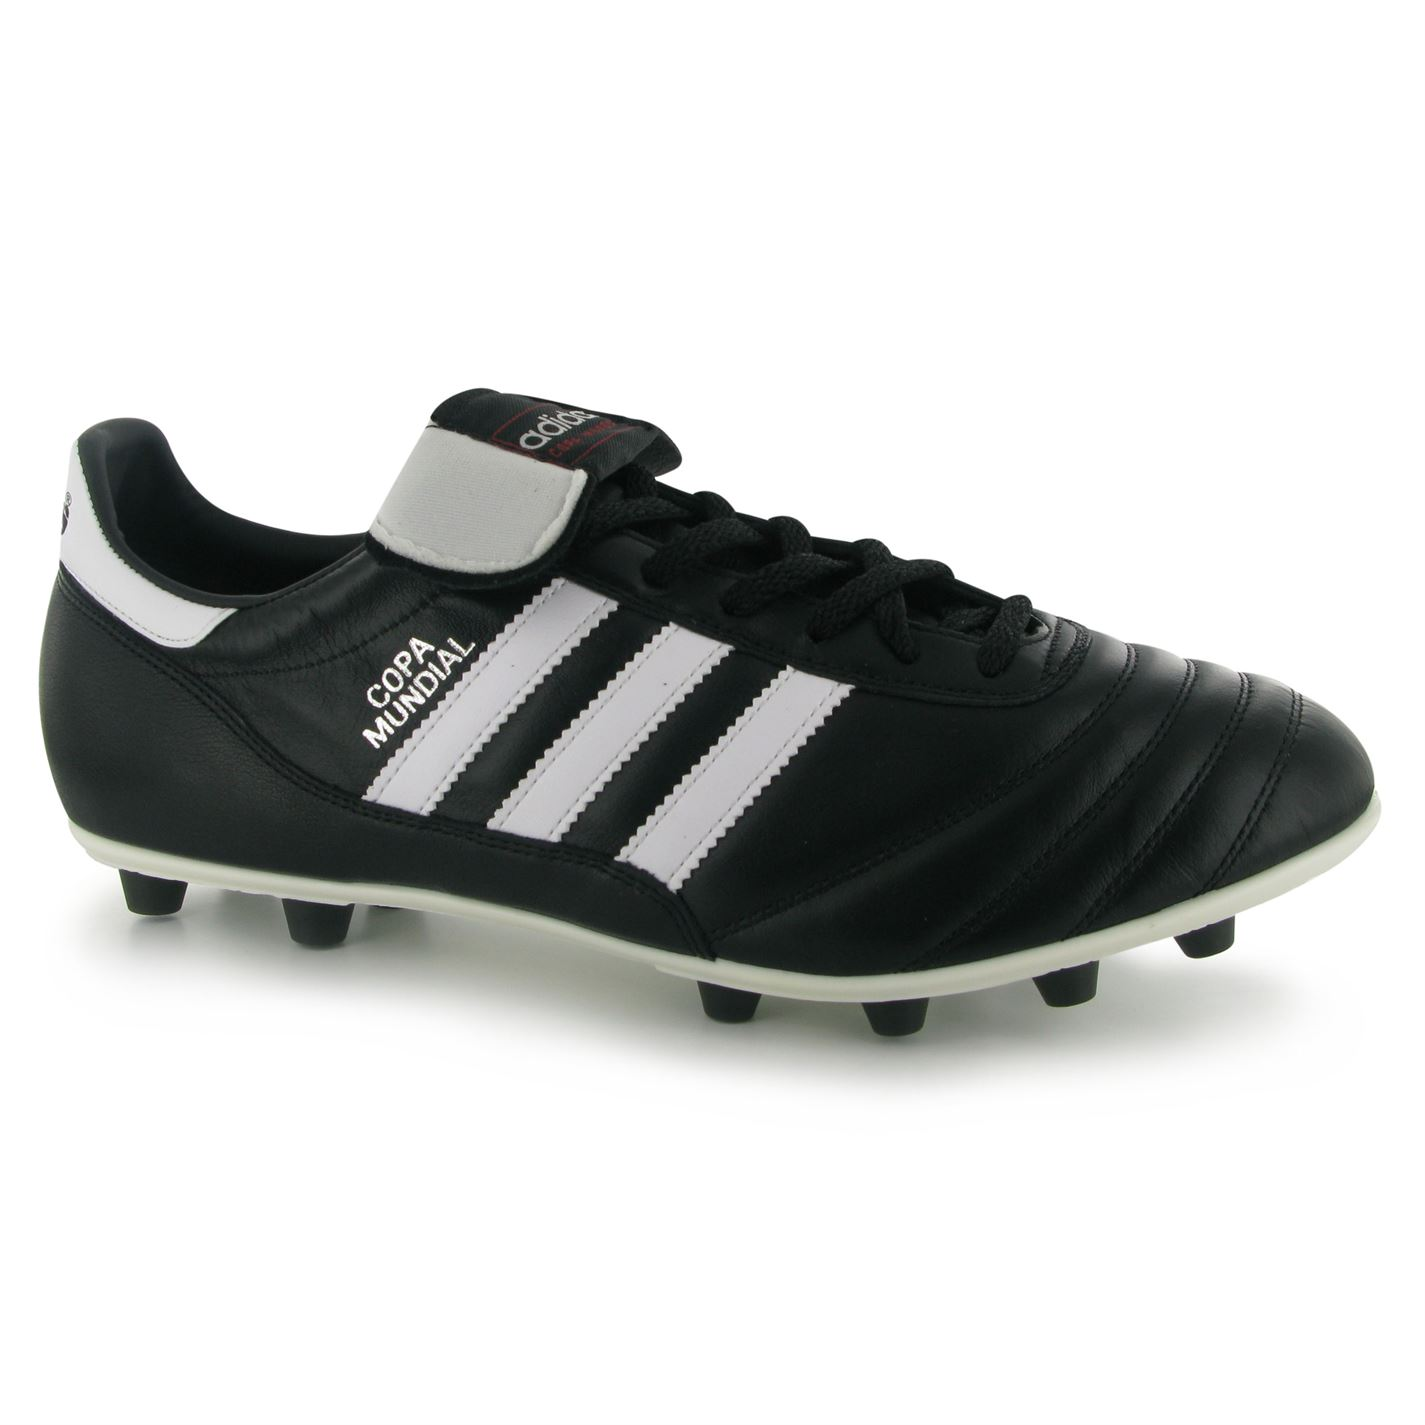 adidas copa mundial football boots sale